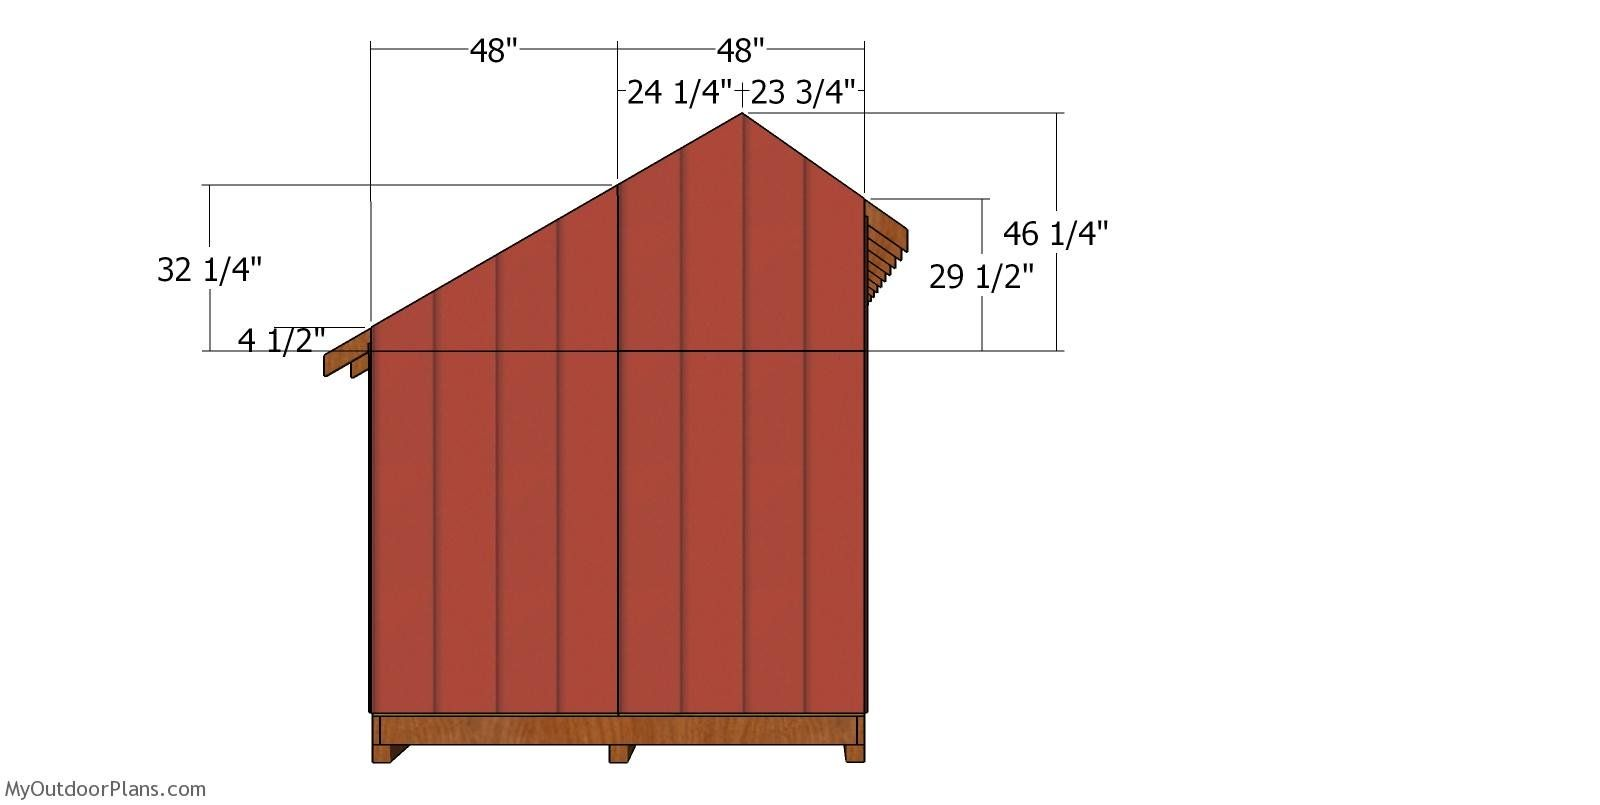 8x12 Saltbox Shed Roof Plans Myoutdoorplans Free Woodworking Plans And Projects Diy Shed Wooden Playhouse Pergola In 2020 Roof Plan Wood Storage Sheds Diy Shed